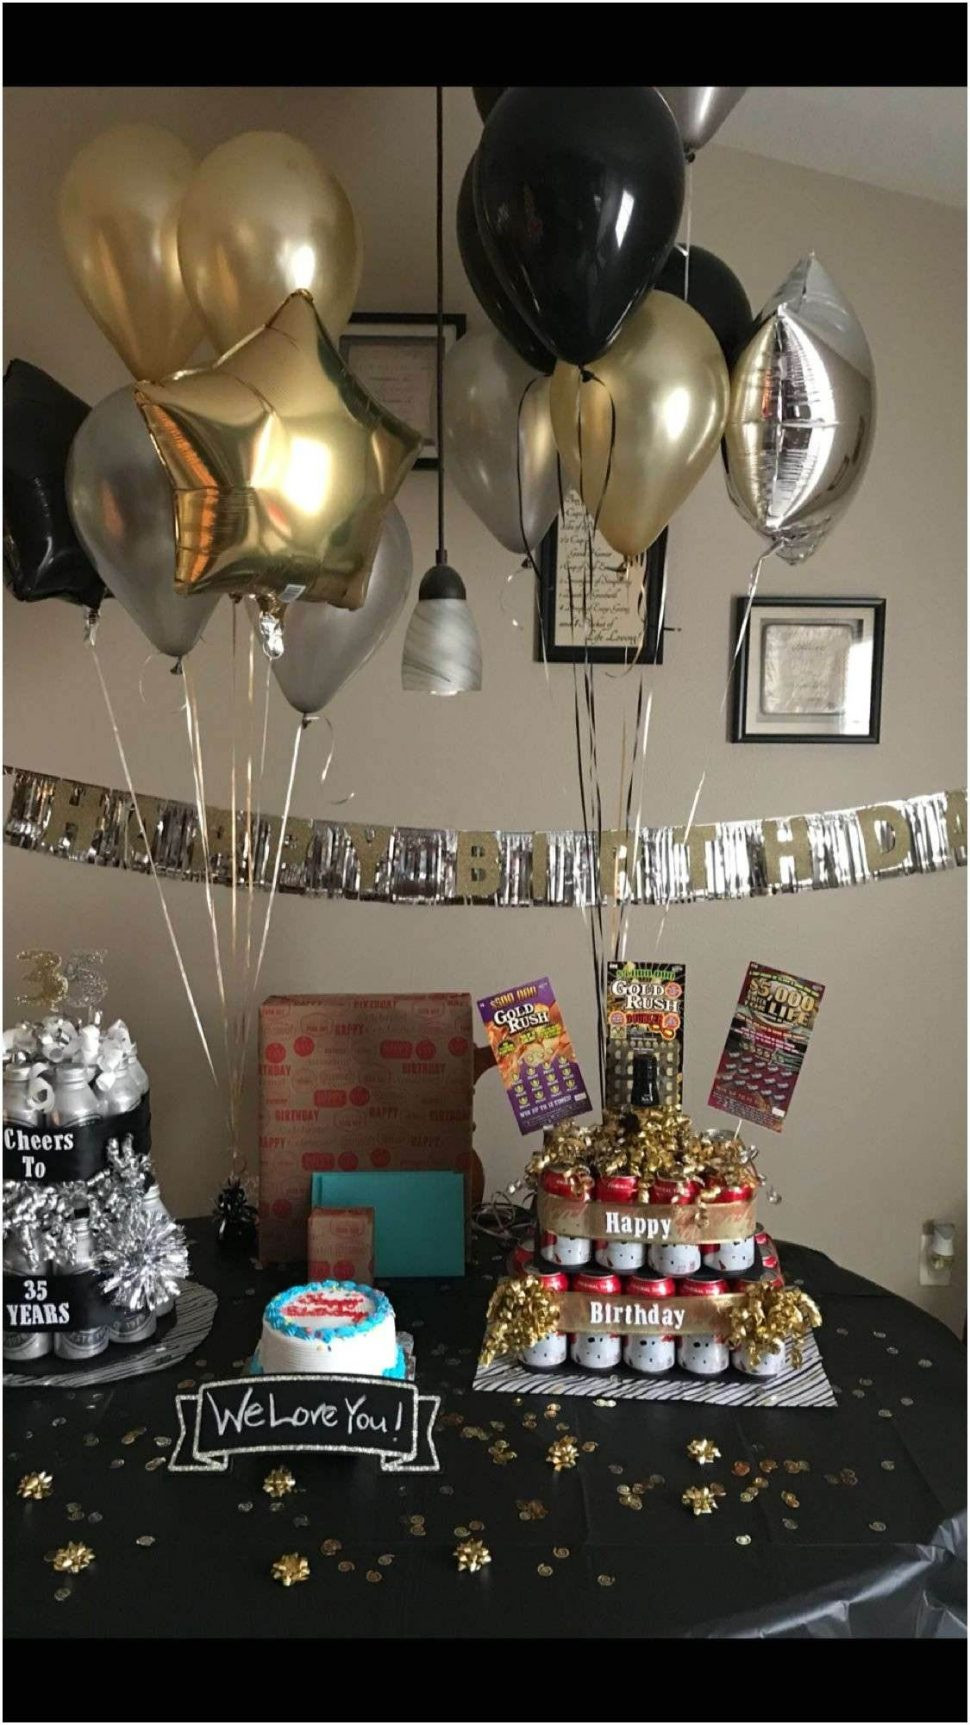 Best ideas about Birthday Decorations For Him . Save or Pin Home Decor 60th Birthday Party Ideas For Husband Siudy Now.